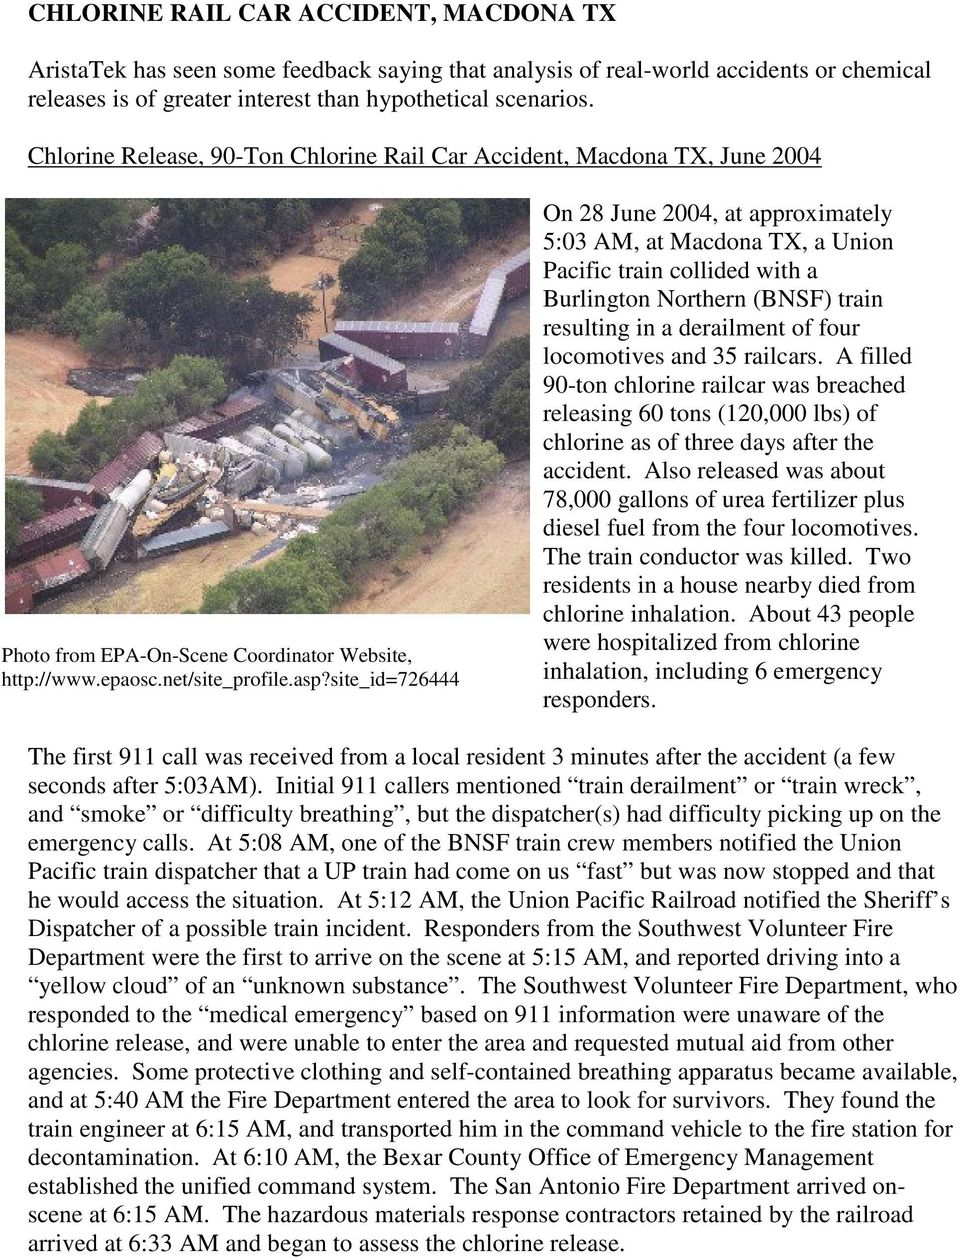 site_id=726444 On 28 June 2004, at approximately 5:03 AM, at Macdona TX, a Union Pacific train collided with a Burlington Northern (BNSF) train resulting in a derailment of four locomotives and 35